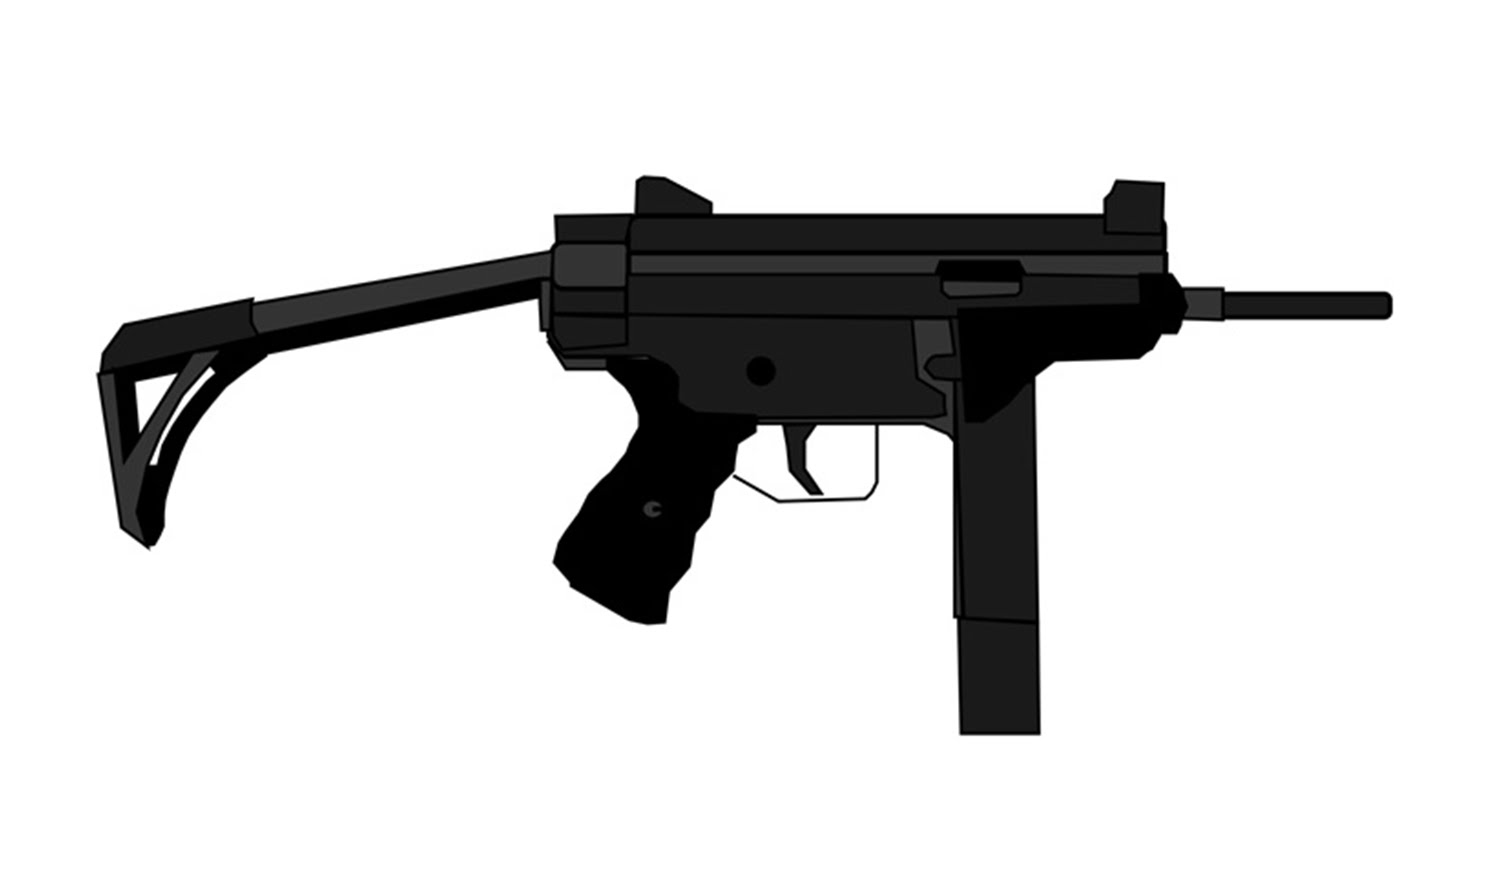 Drawn pistol submachine gun Submachine Gun Draw  a